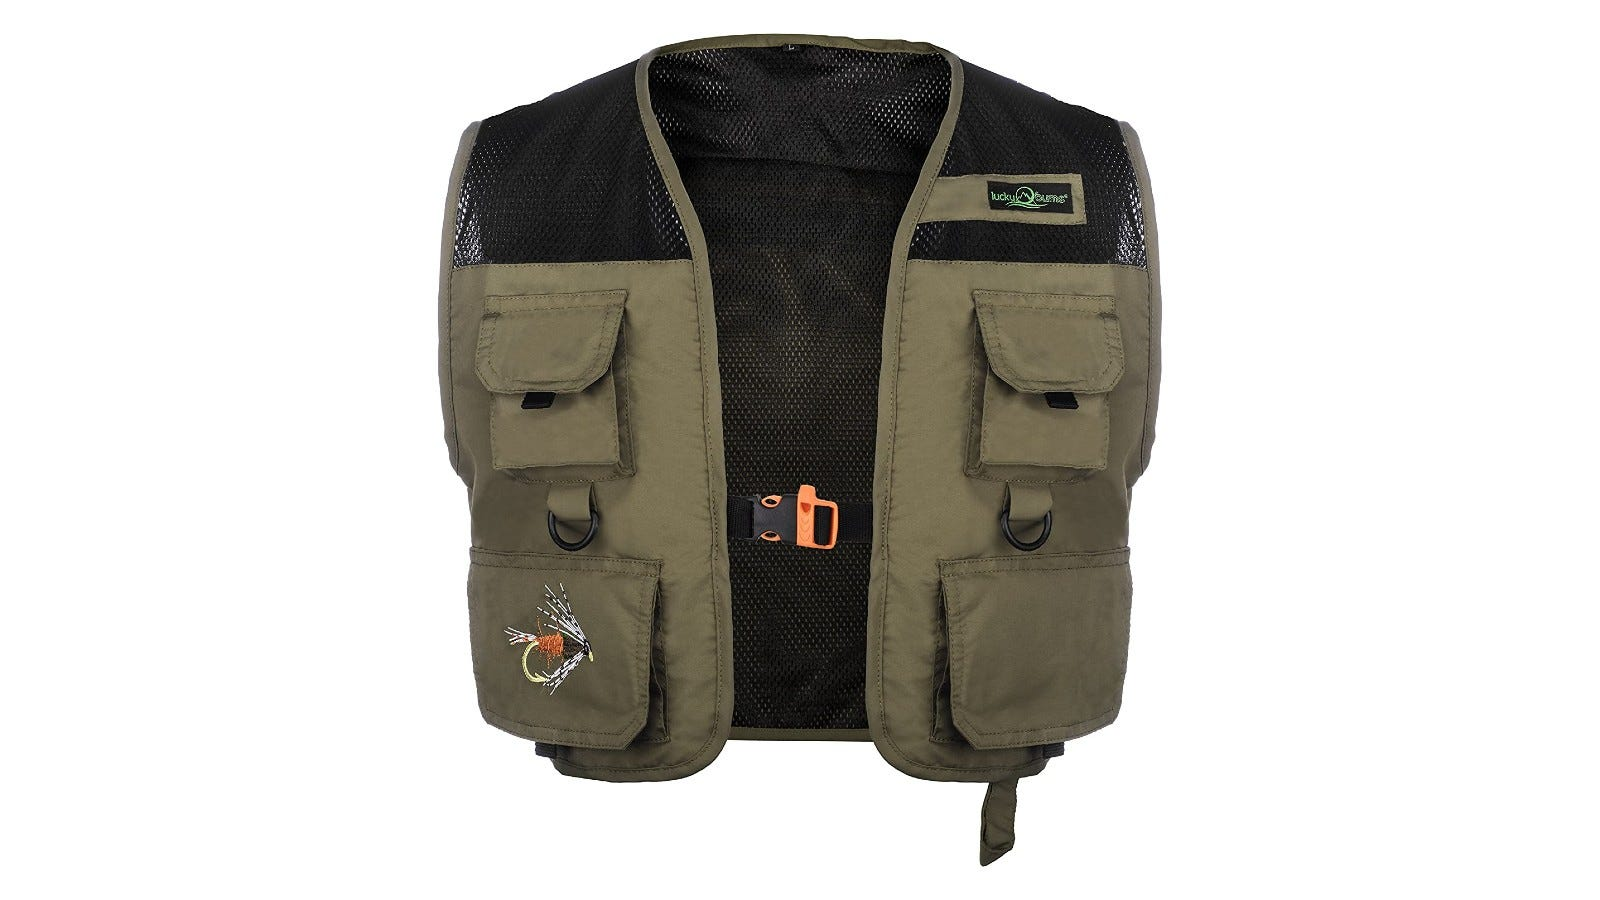 A small fishing life vest with four pockets on the front